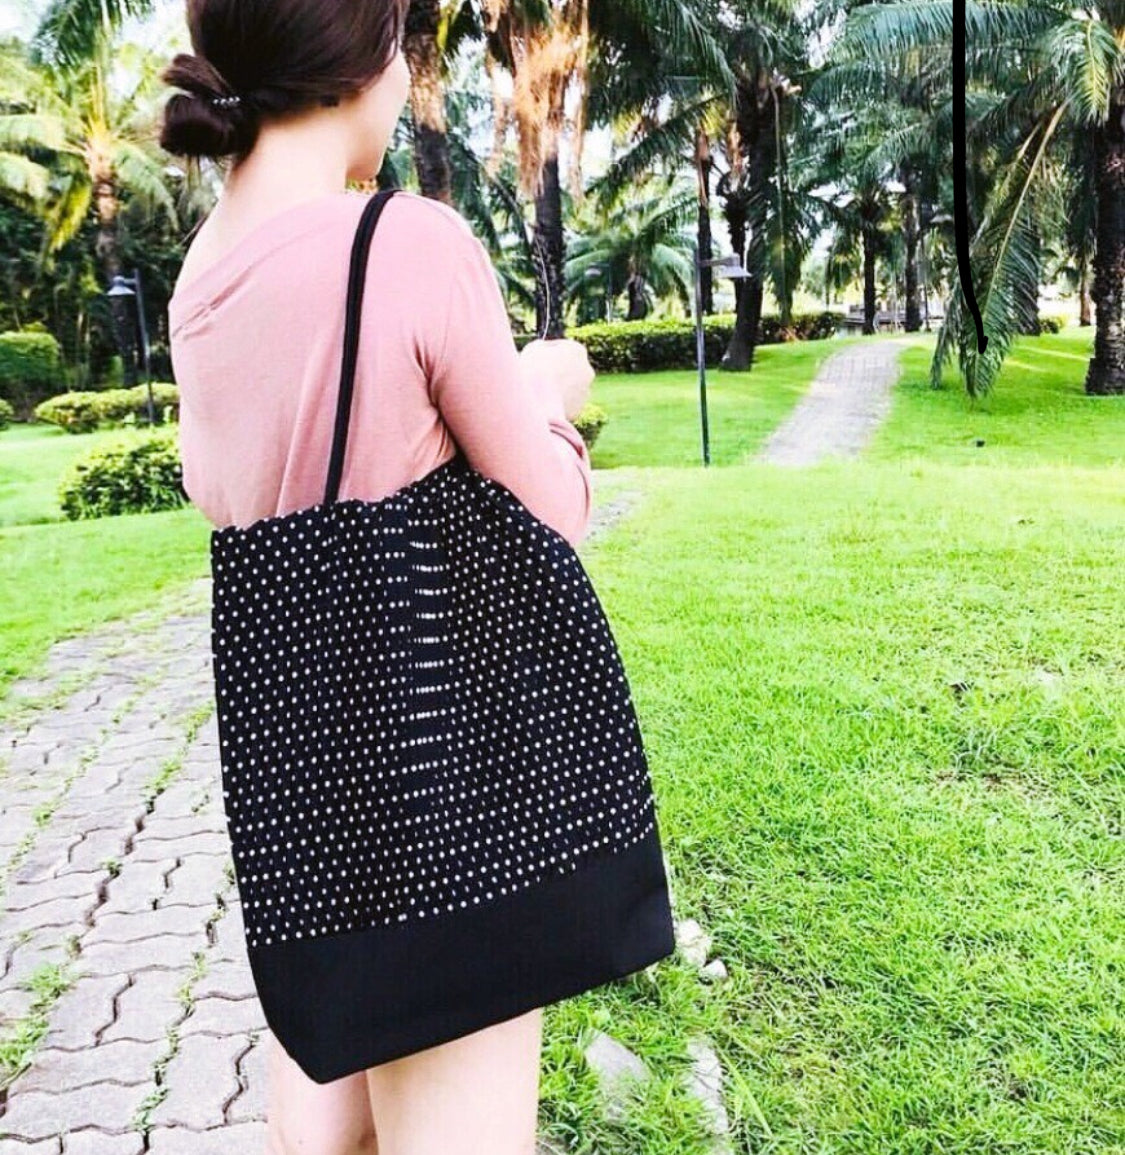 Sofia Pleated Bag (Black+White Polka Dots)